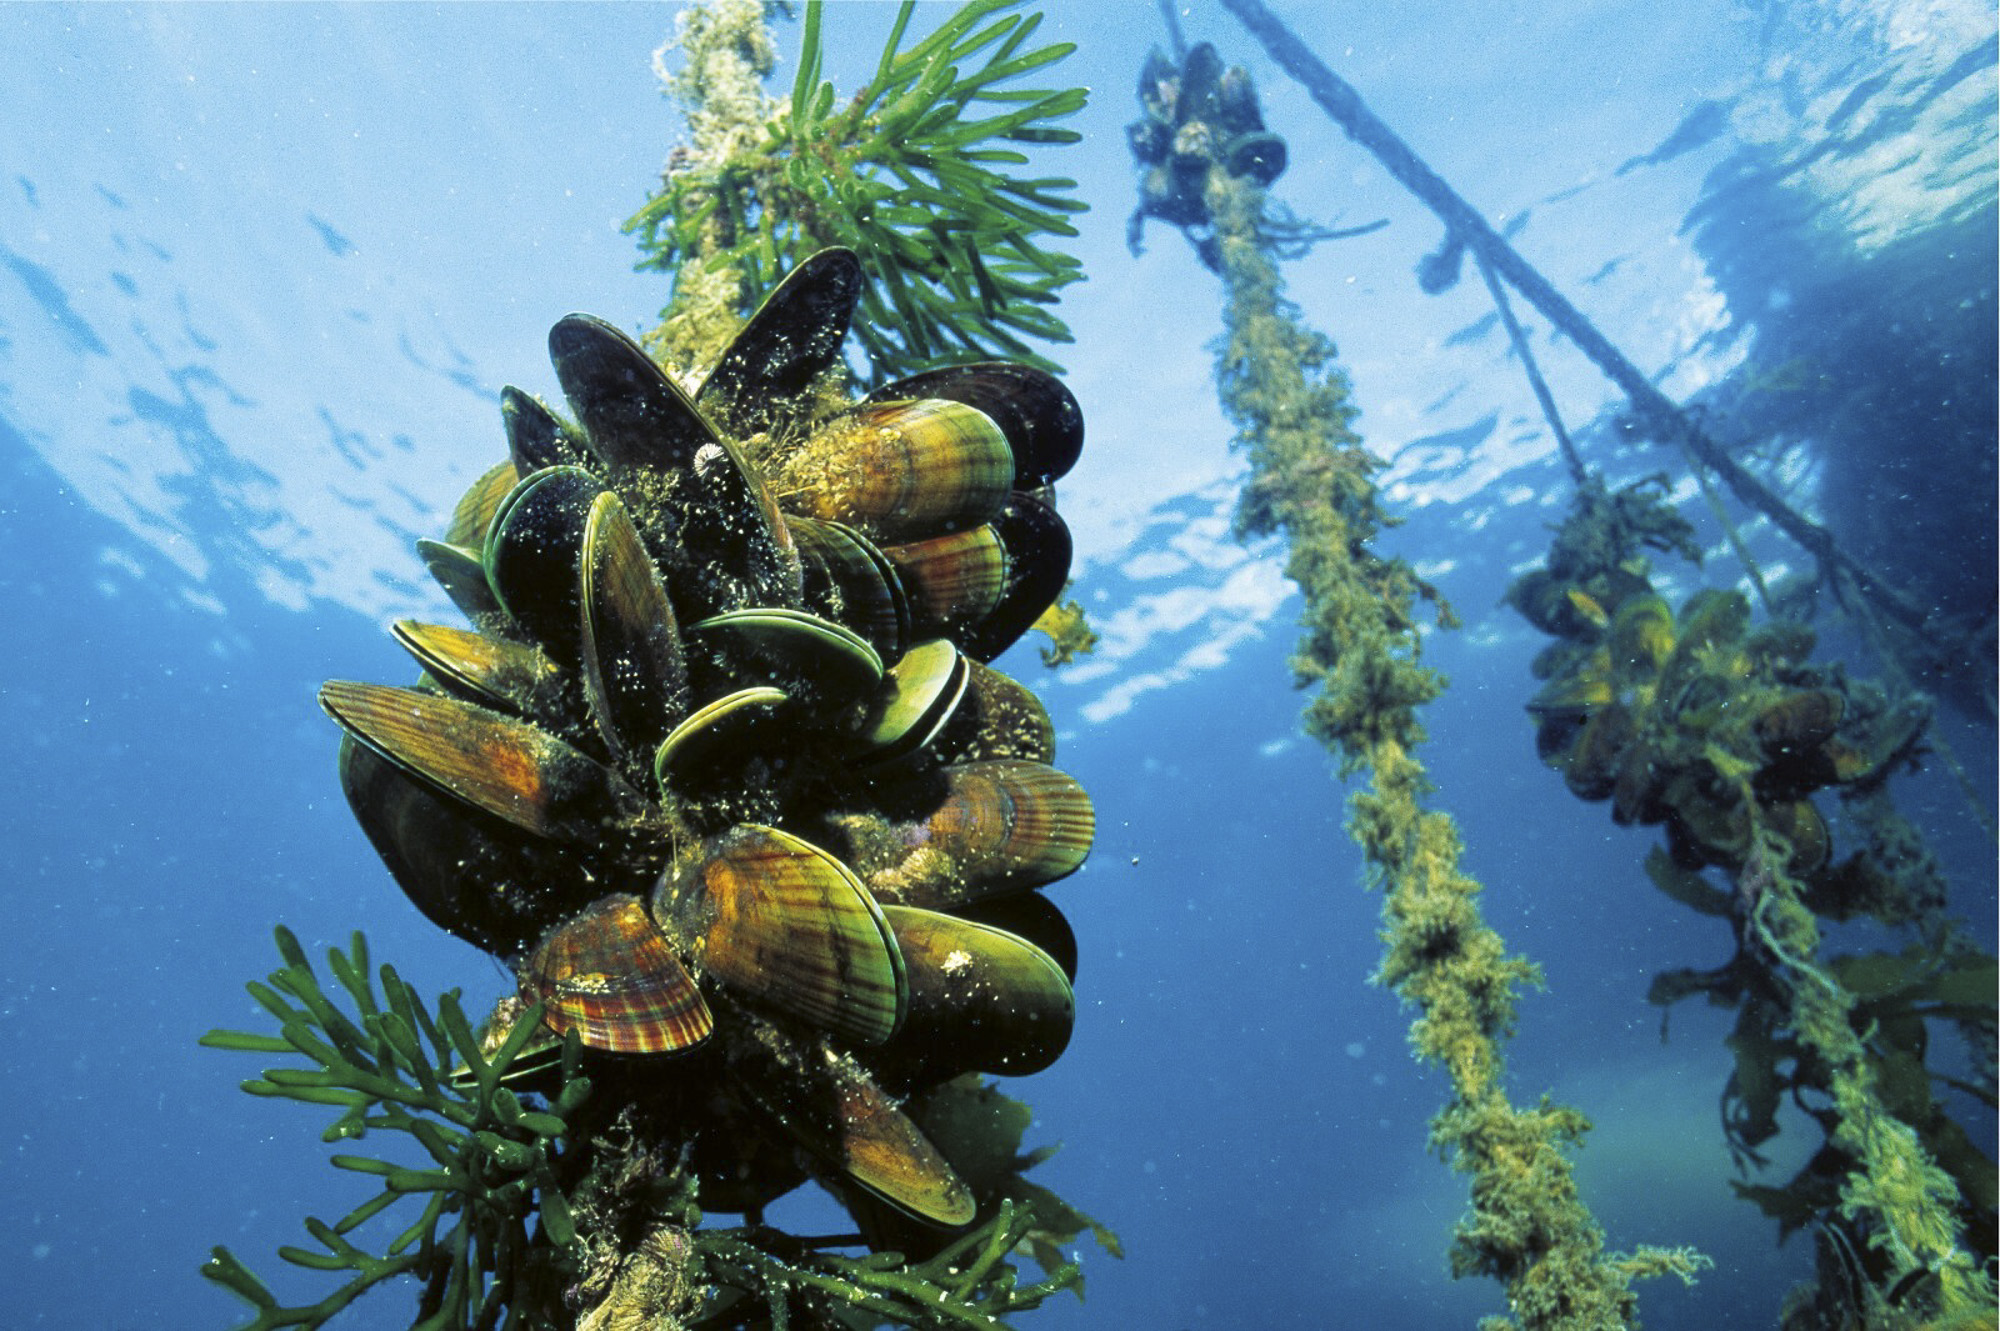 Underwater view of mussel longlines. A similar method for mussel farming has been proposed for aquaculture farms in California. Photo by South Australian Research and Development Institute via NOAA